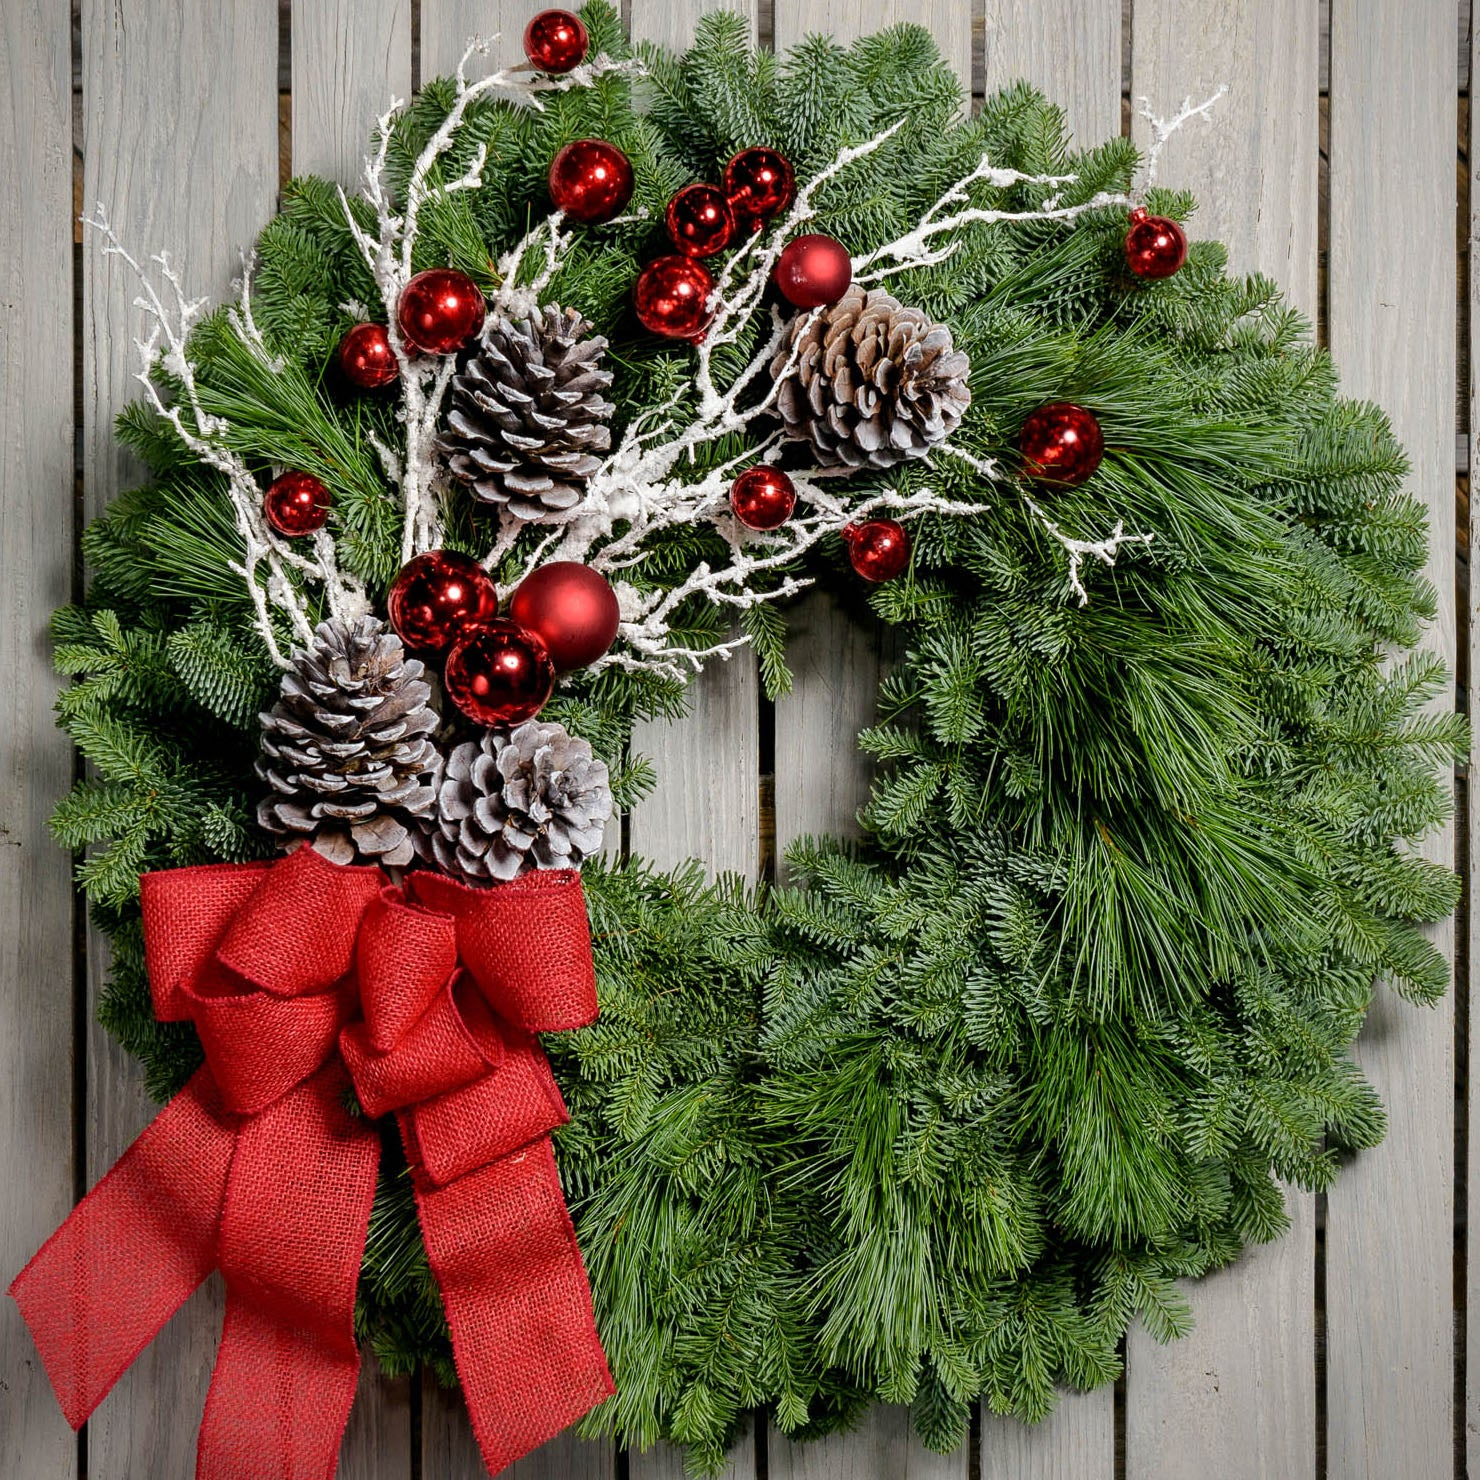 Christmas wreath made with noble fir, pine, pine cones, snow-covered branches, red balls and a red burlap bow close up